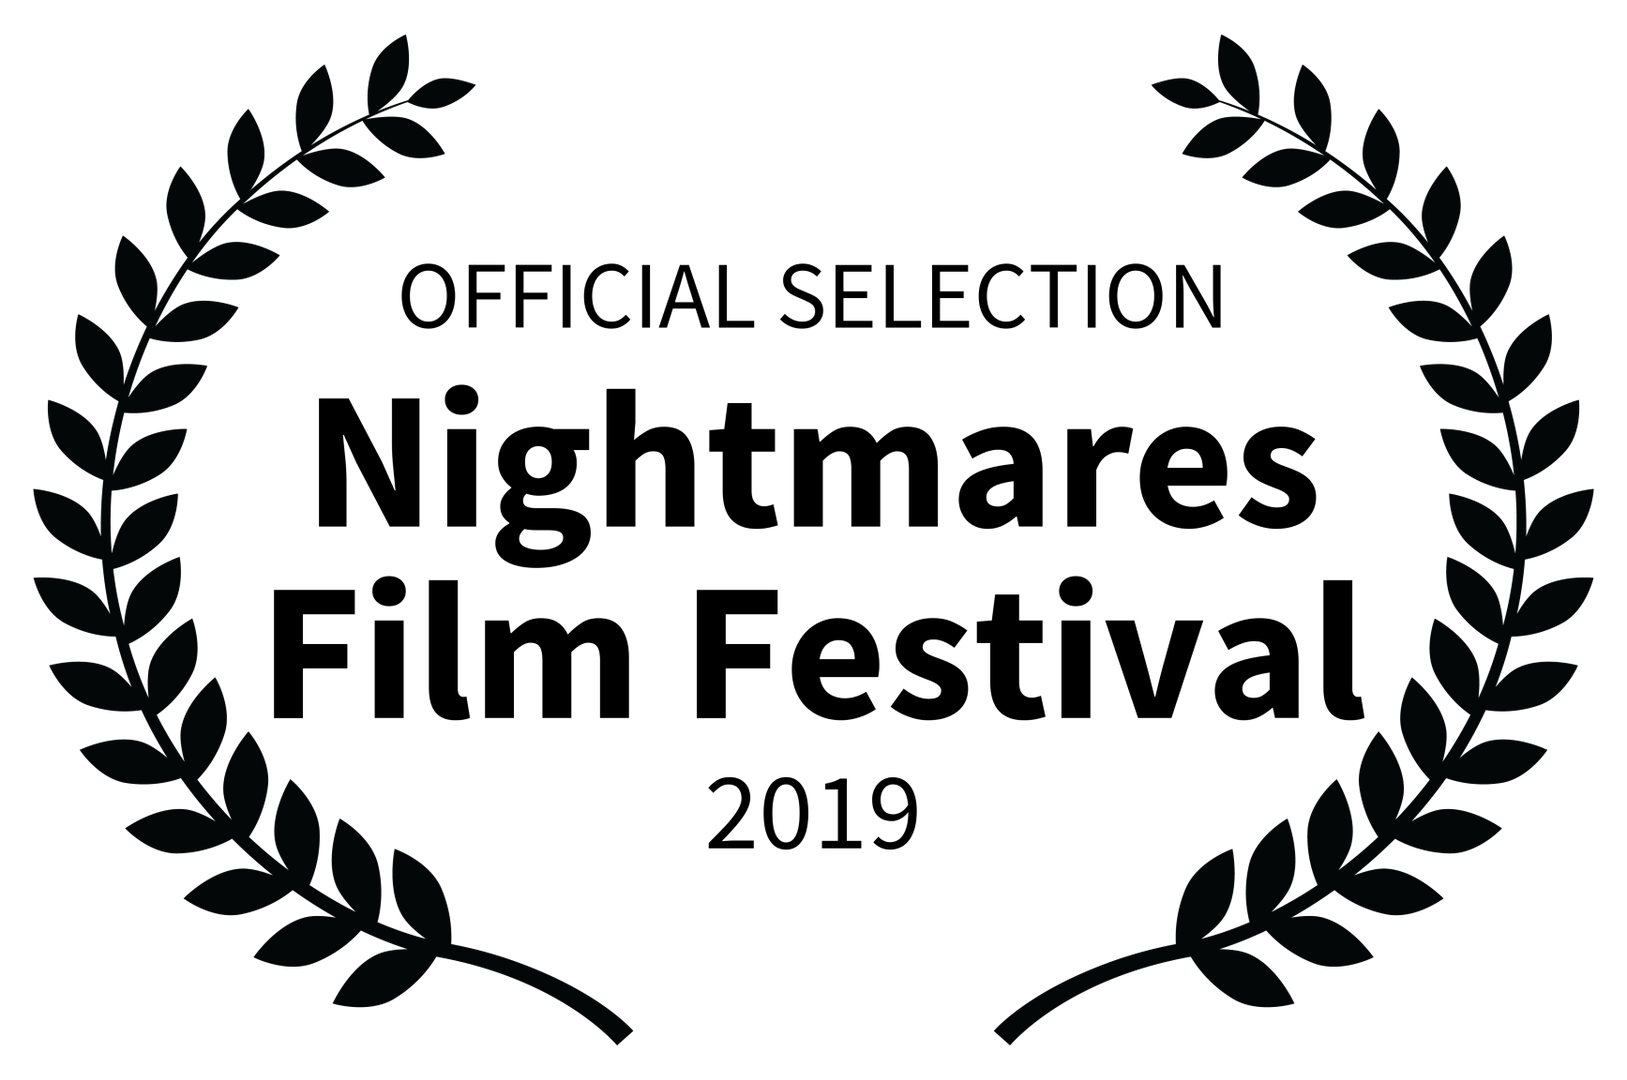 OFFICIAL SELECTION - Nightmares Film Fes